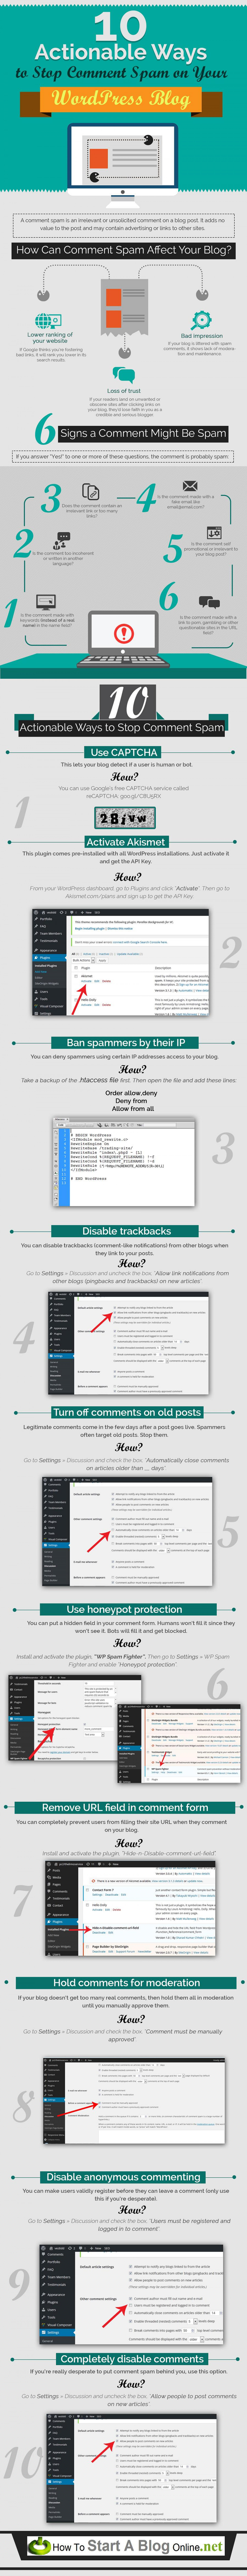 10 Actionable Ways to Stop Comment Spam on Your WordPress Blog Infographic